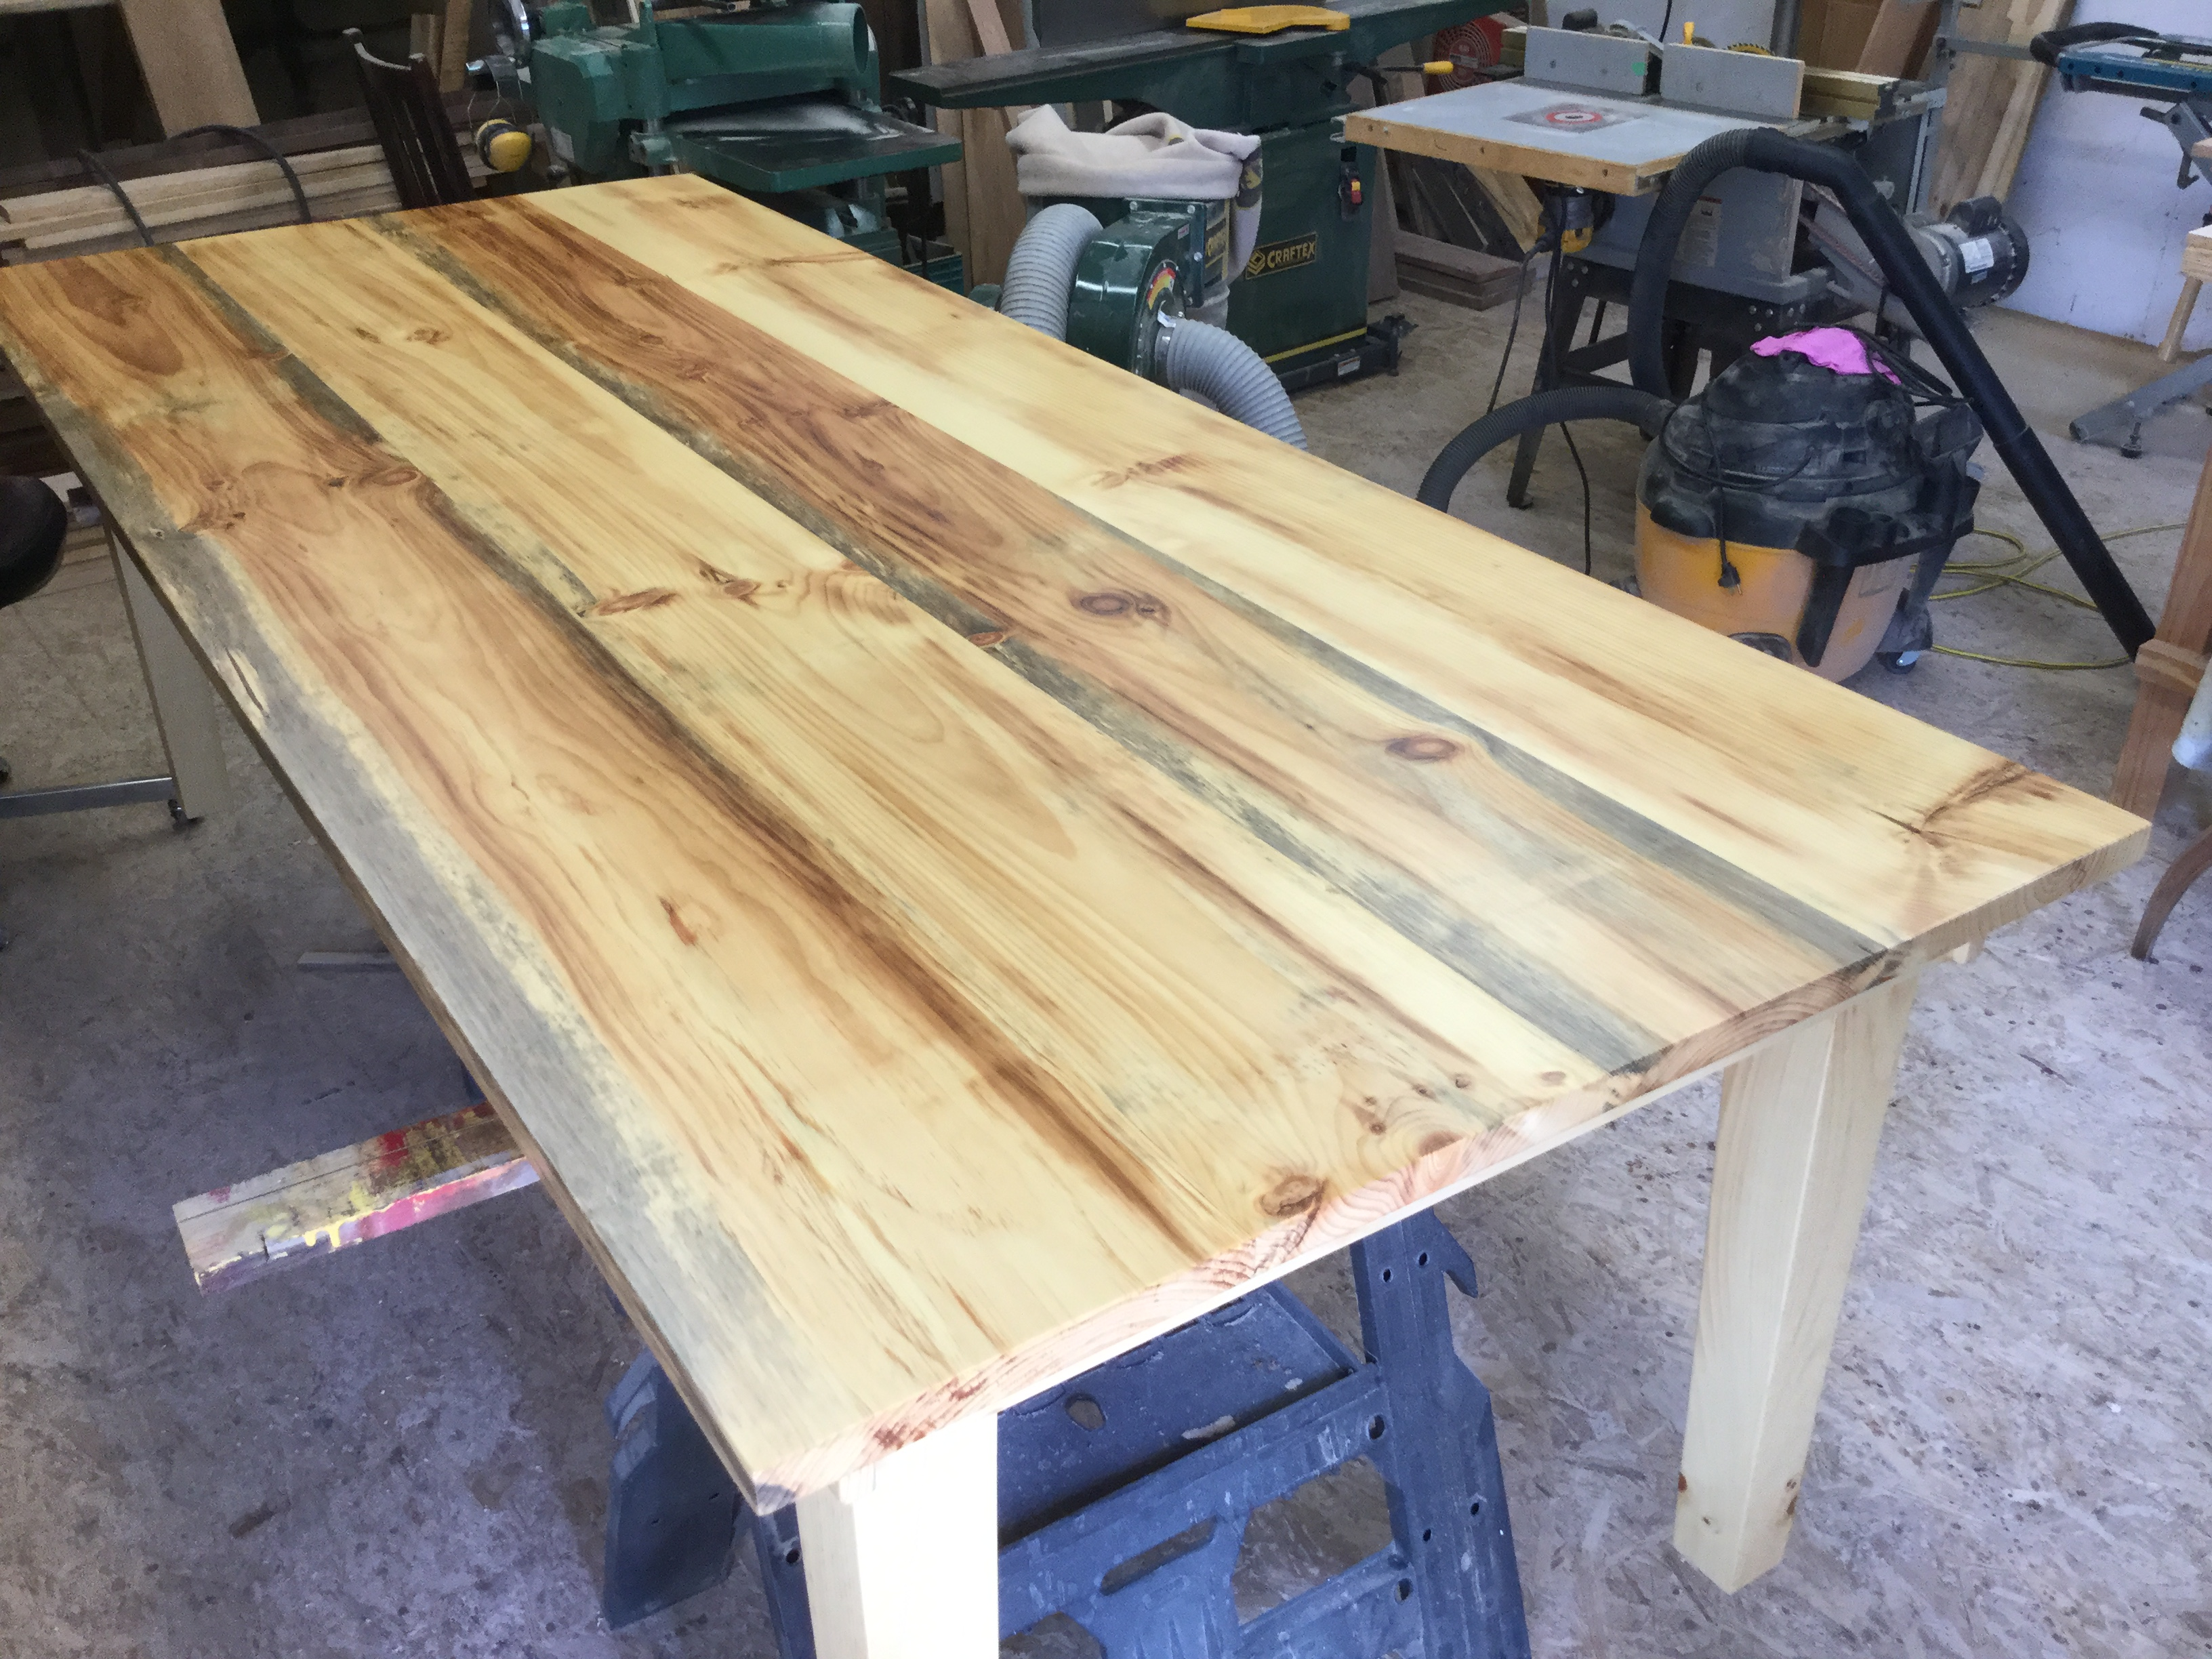 8' Pine Table